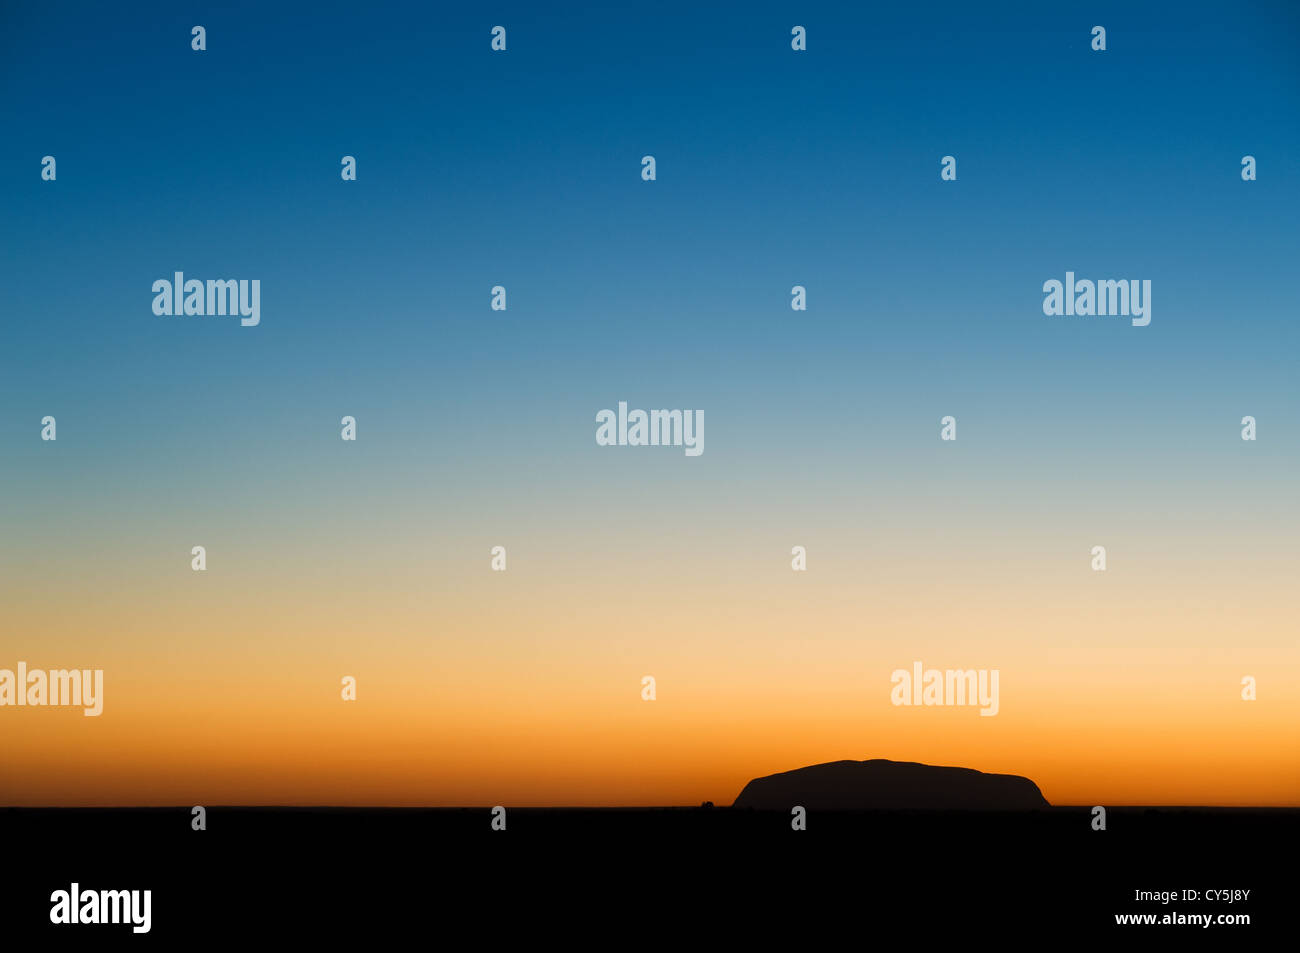 Black silhouette of Uluru in front of a sunlit horizon. - Stock Image